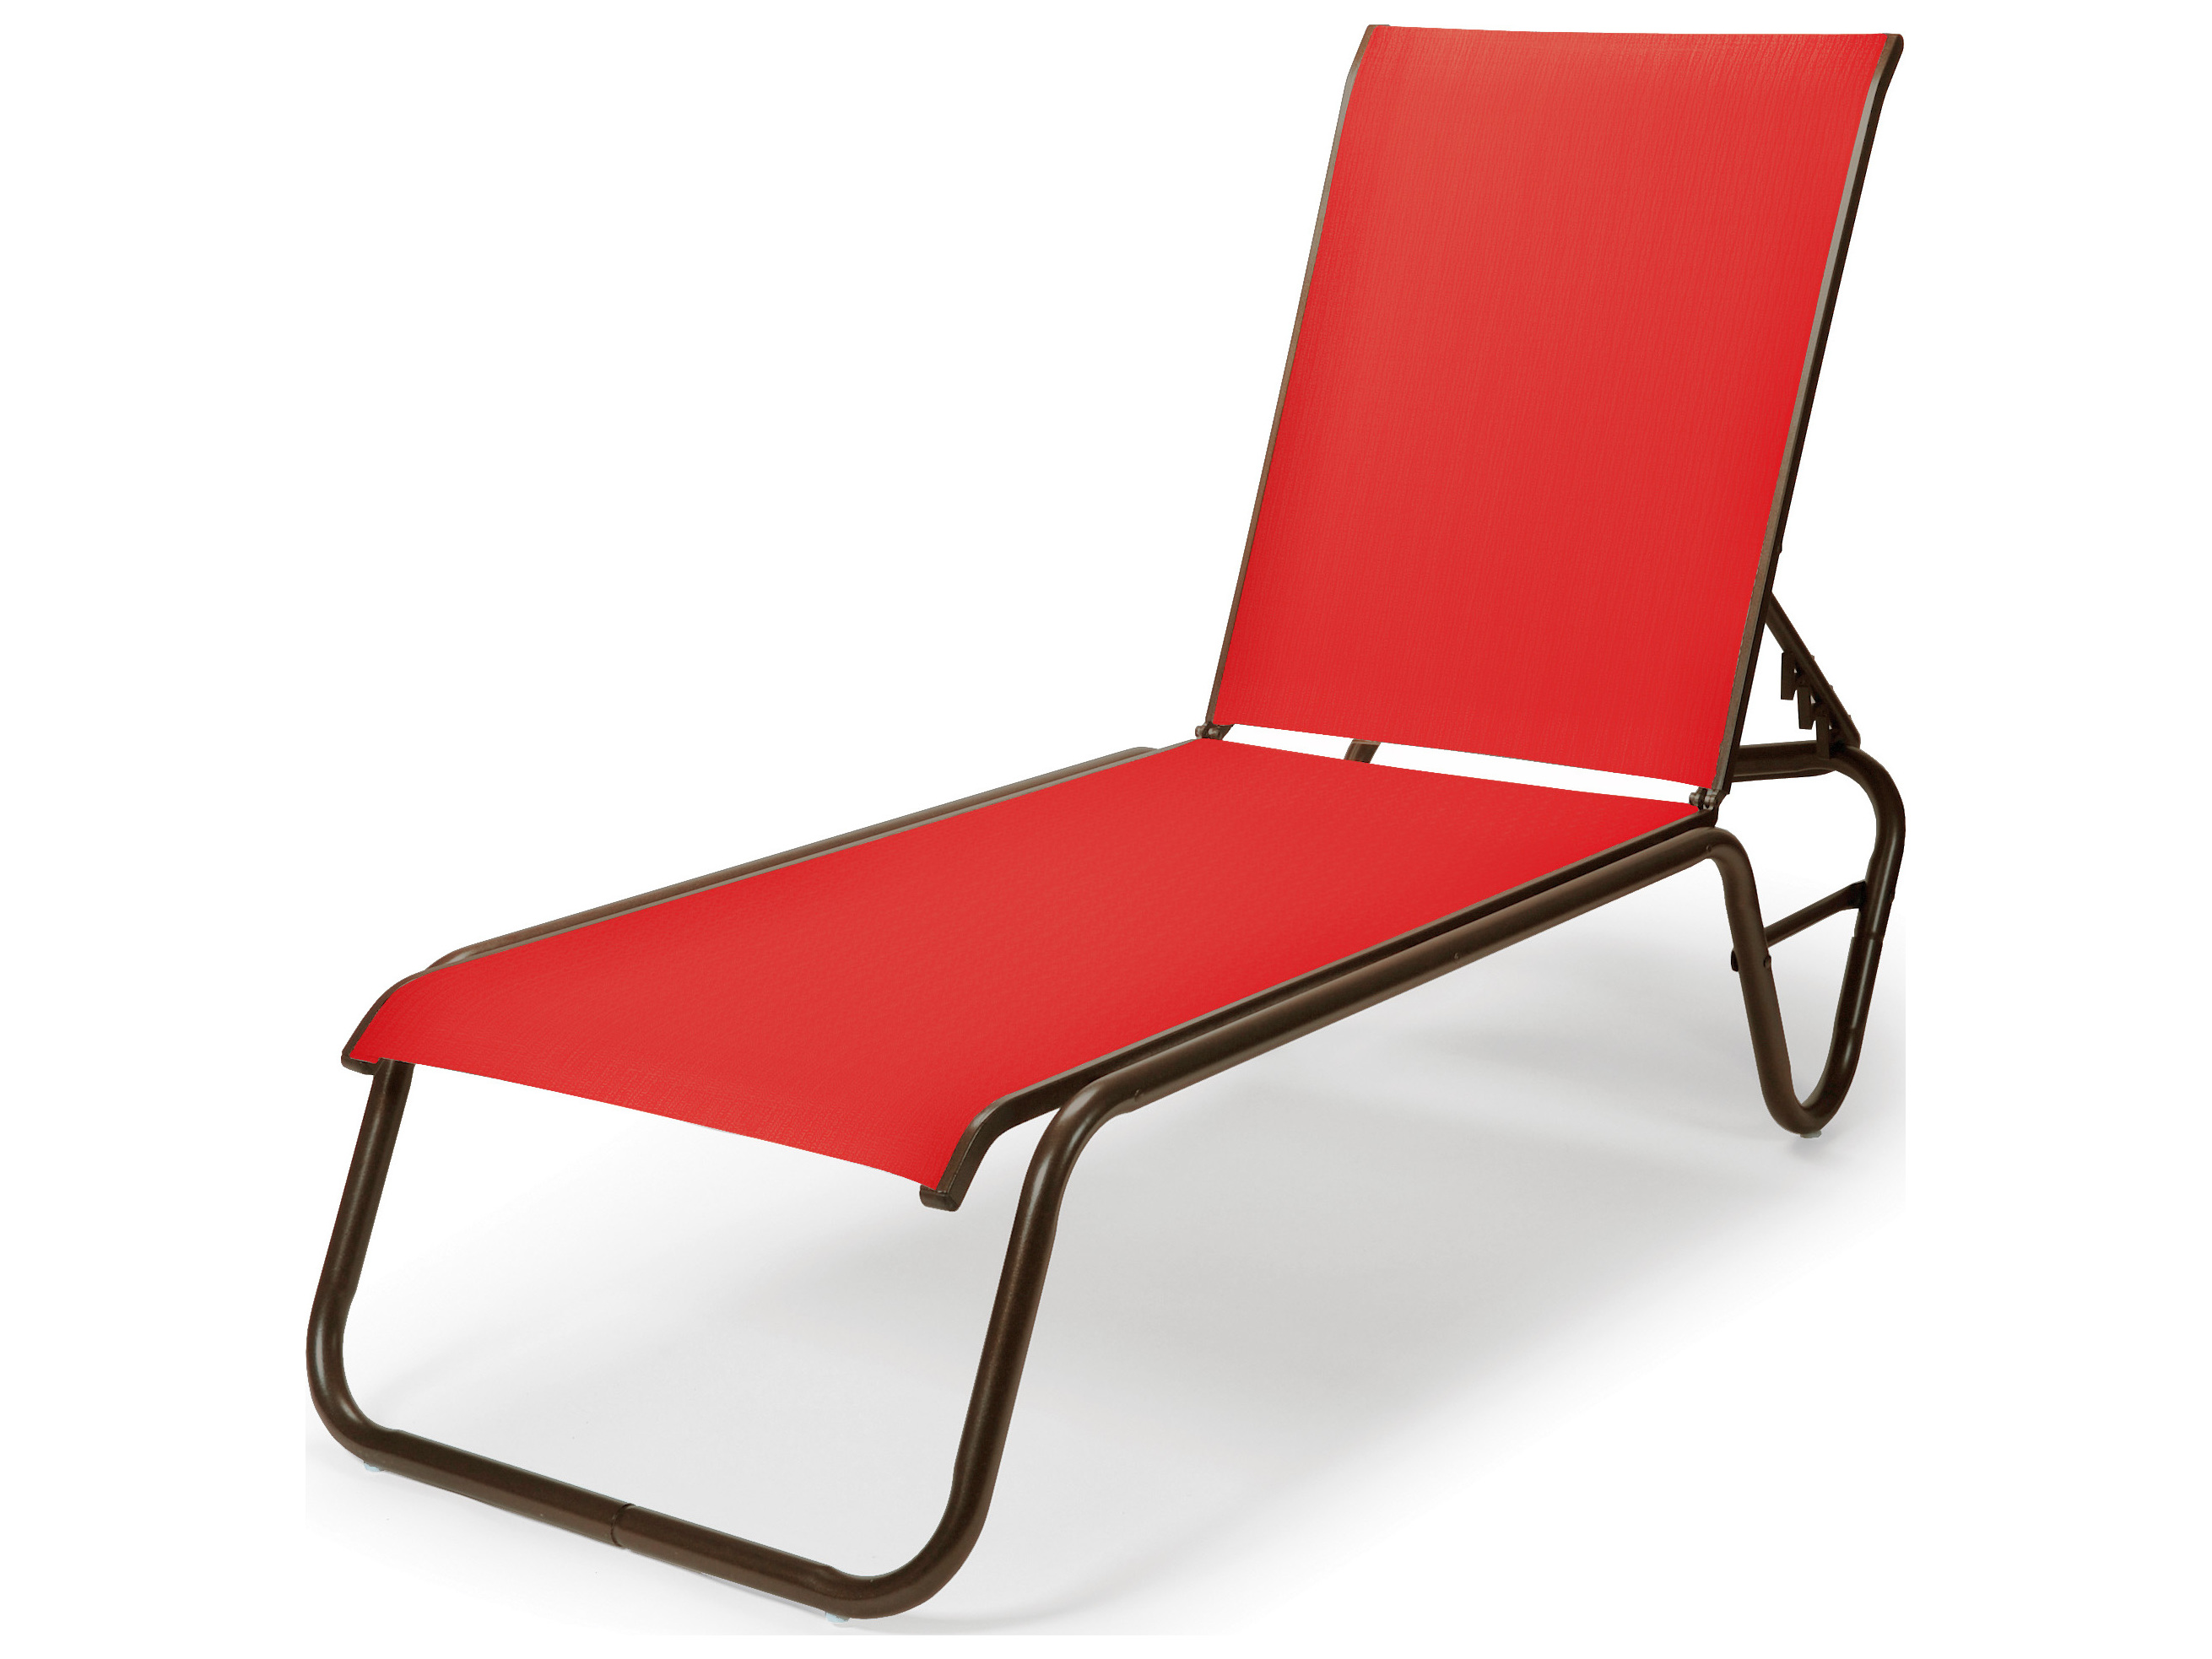 shaped outdoor weather free all shipping red home lounge cushion overstock garden today u chaise product